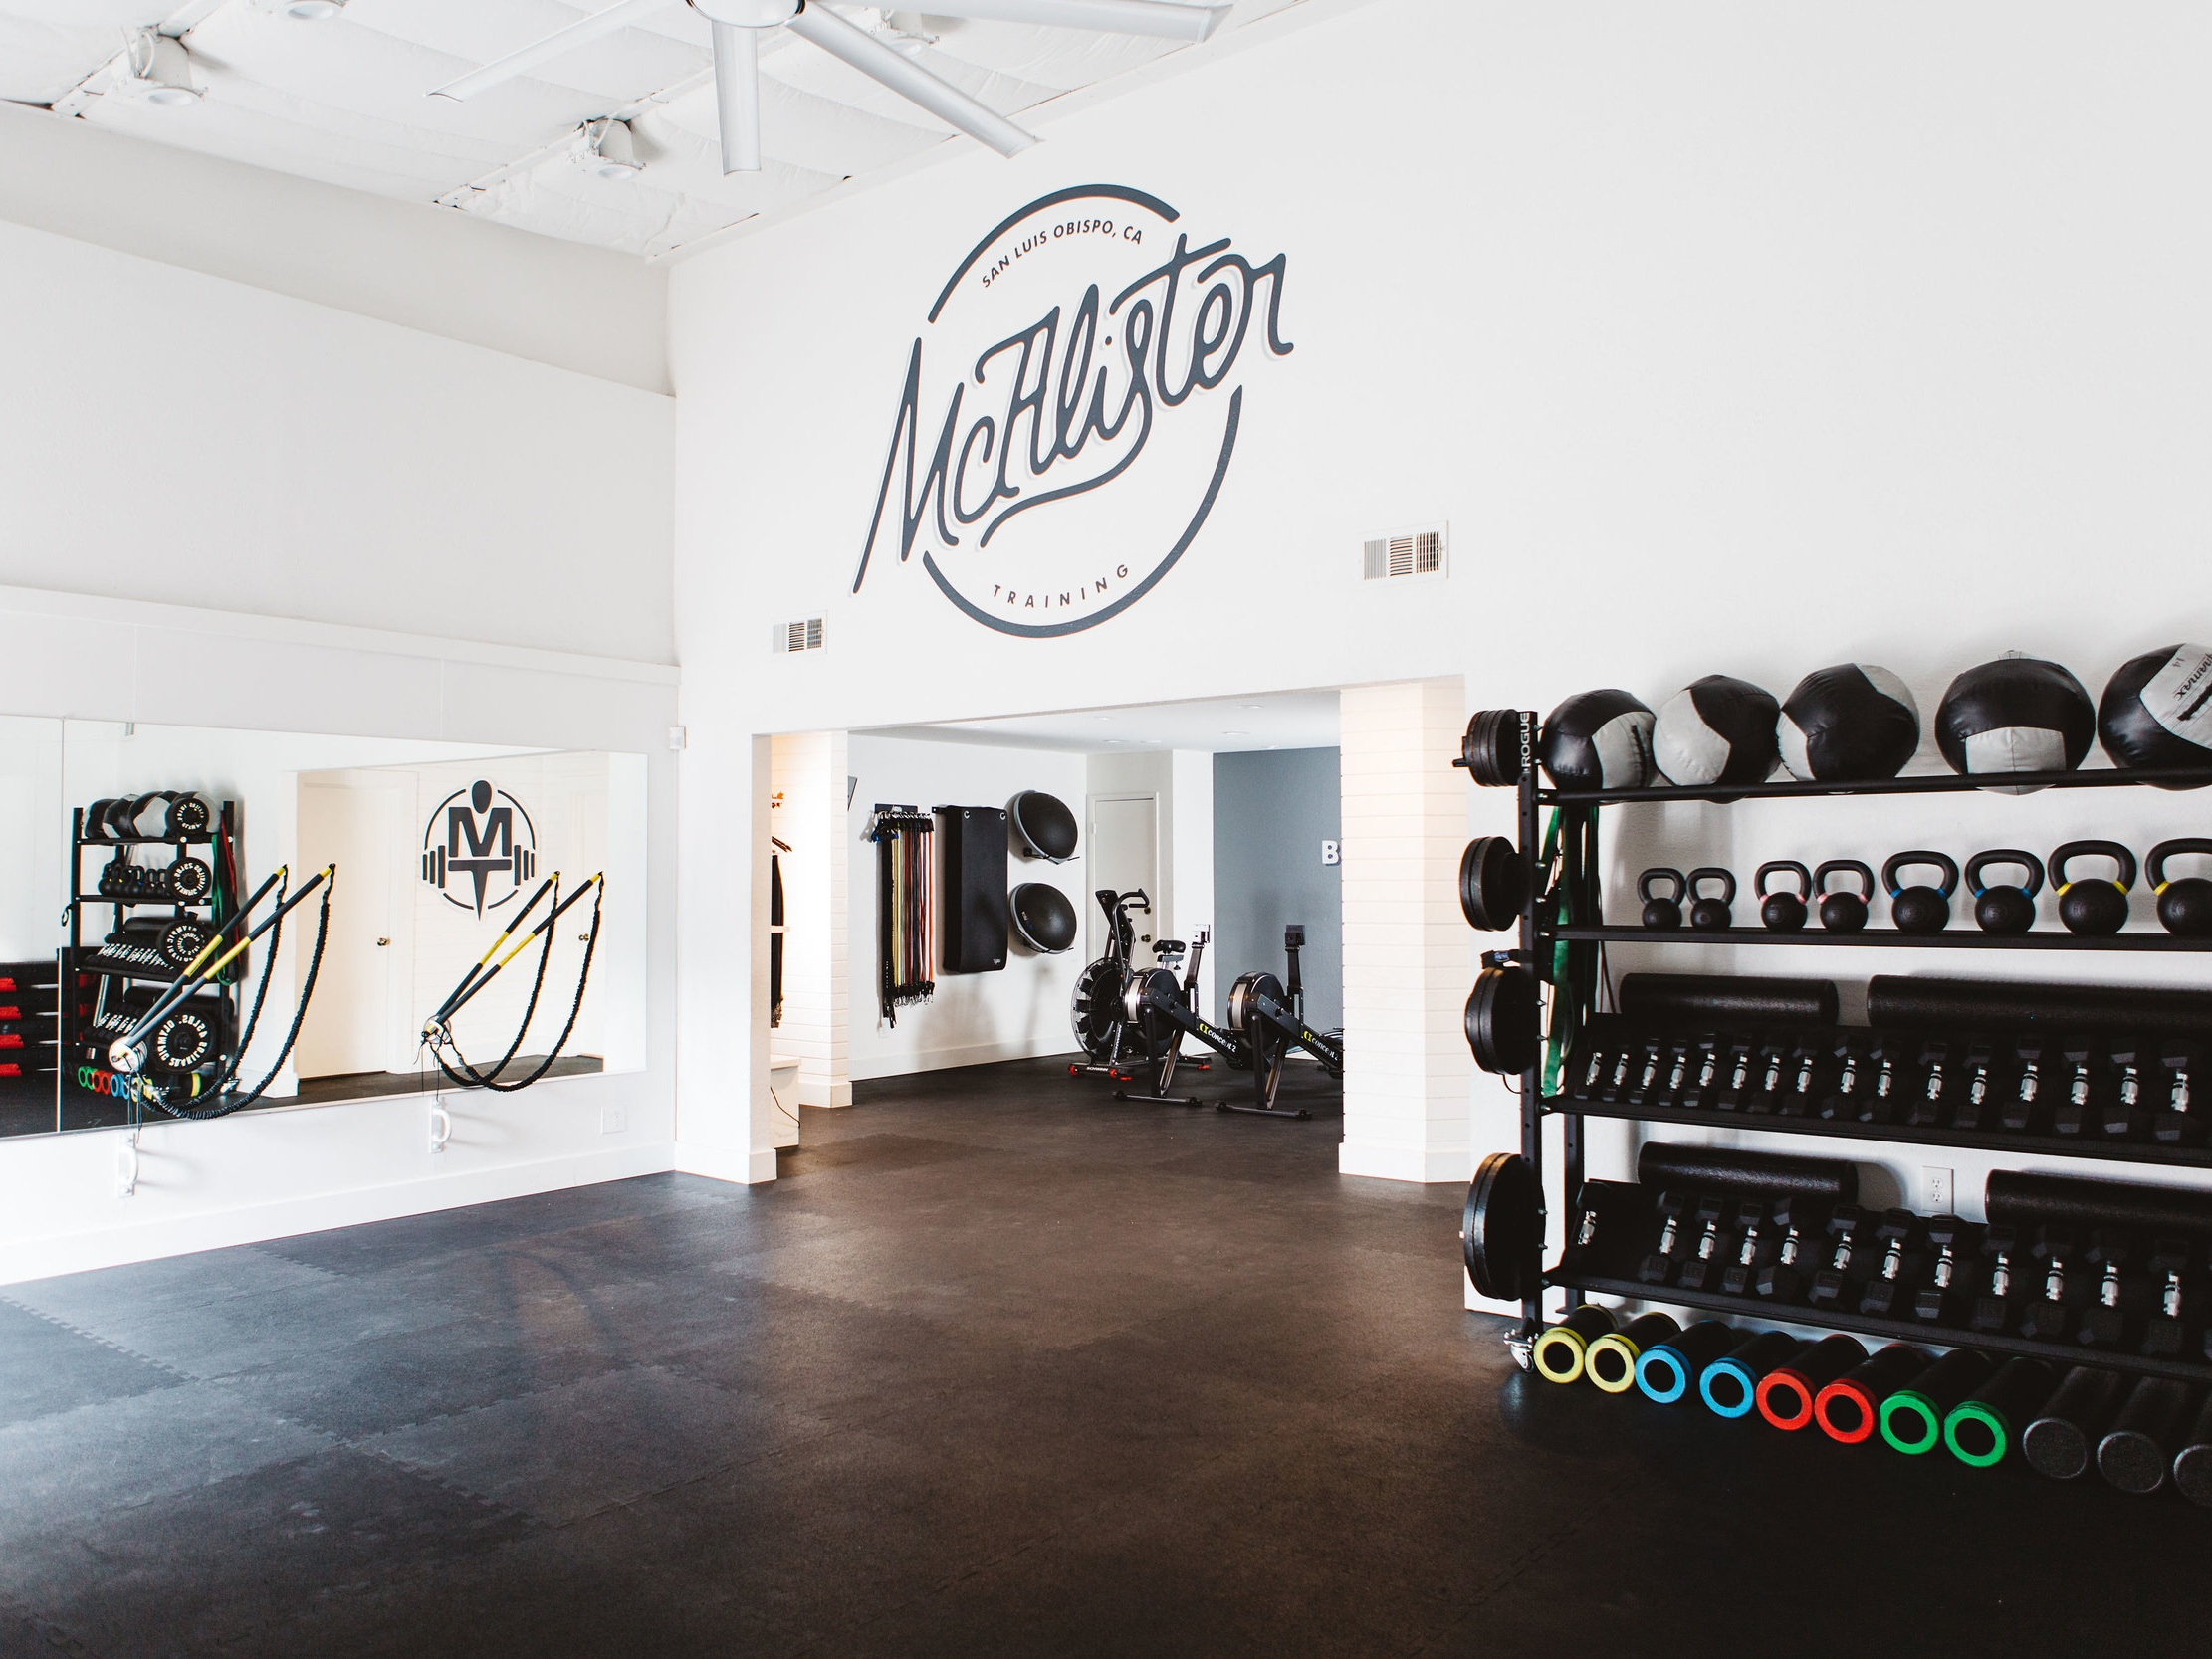 McAlister+Training+circuit+training+studio.jpg